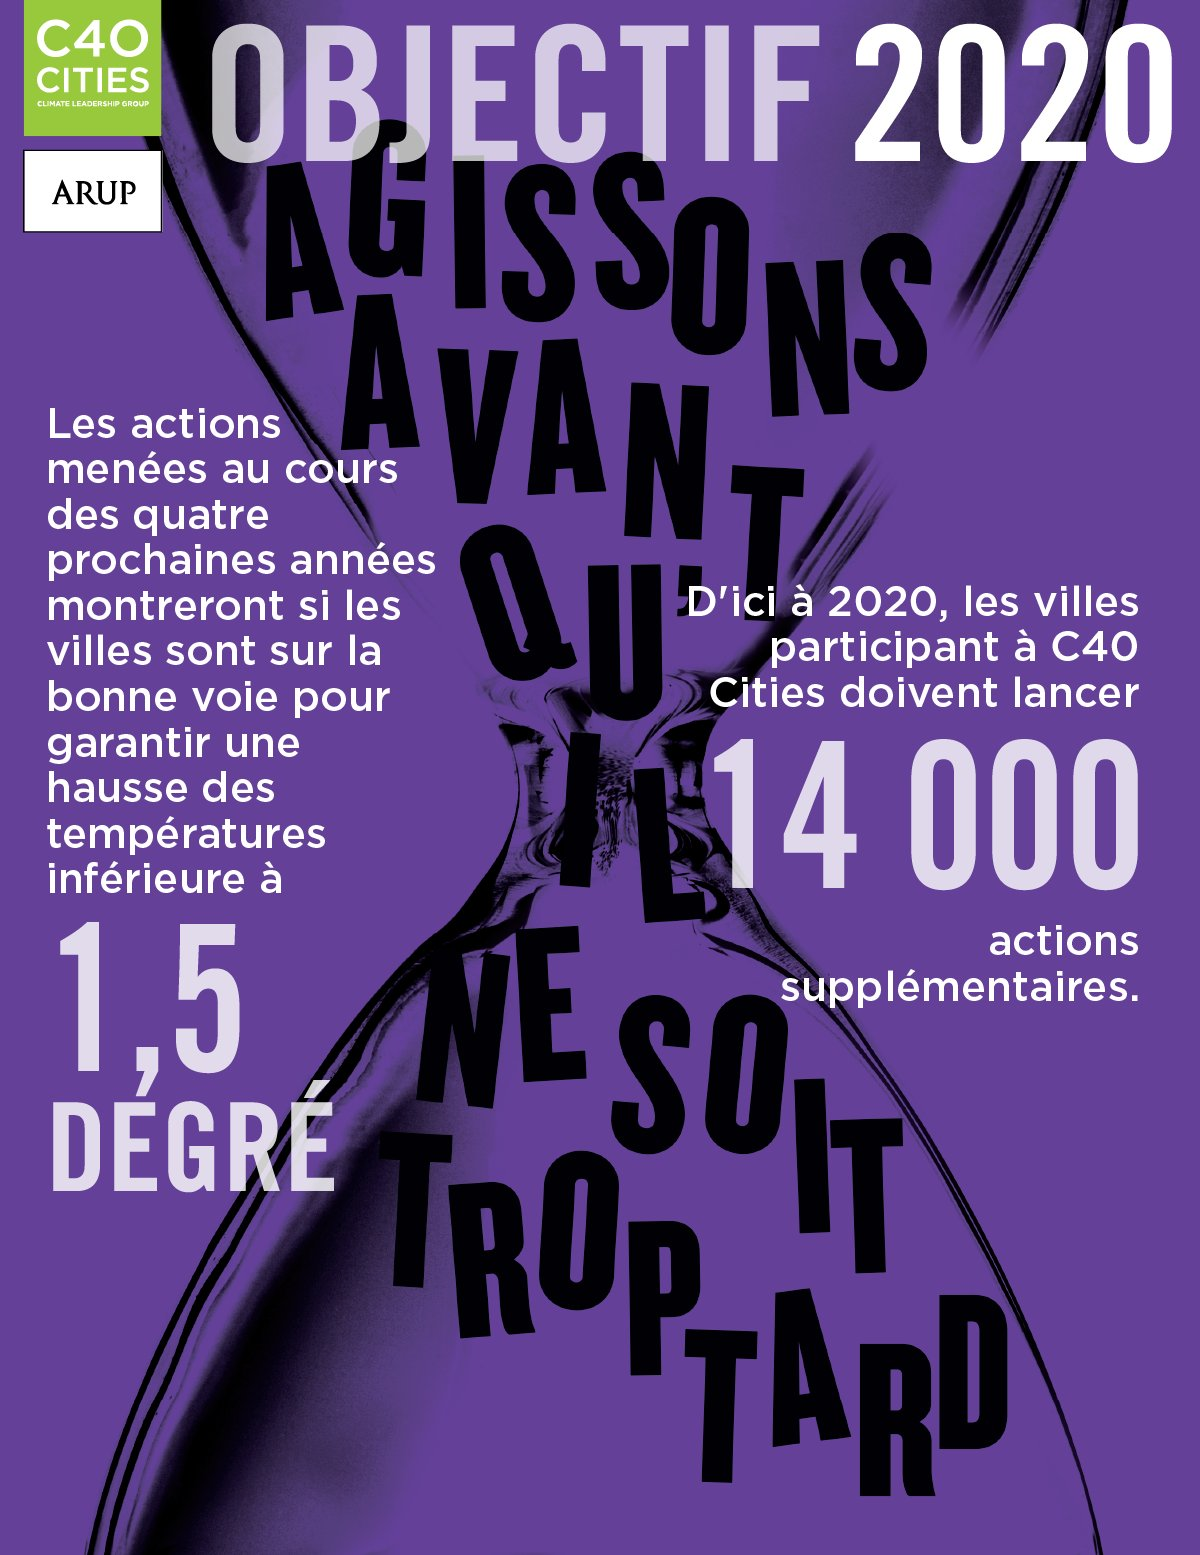 Sans action immédiate des villes, l'Accord de Paris ne peut être mis en oeuvre. https://t.co/zh4Mr9Hid8 #2020DontBeLate #Deadline2020 https://t.co/VHvnCOZWgN